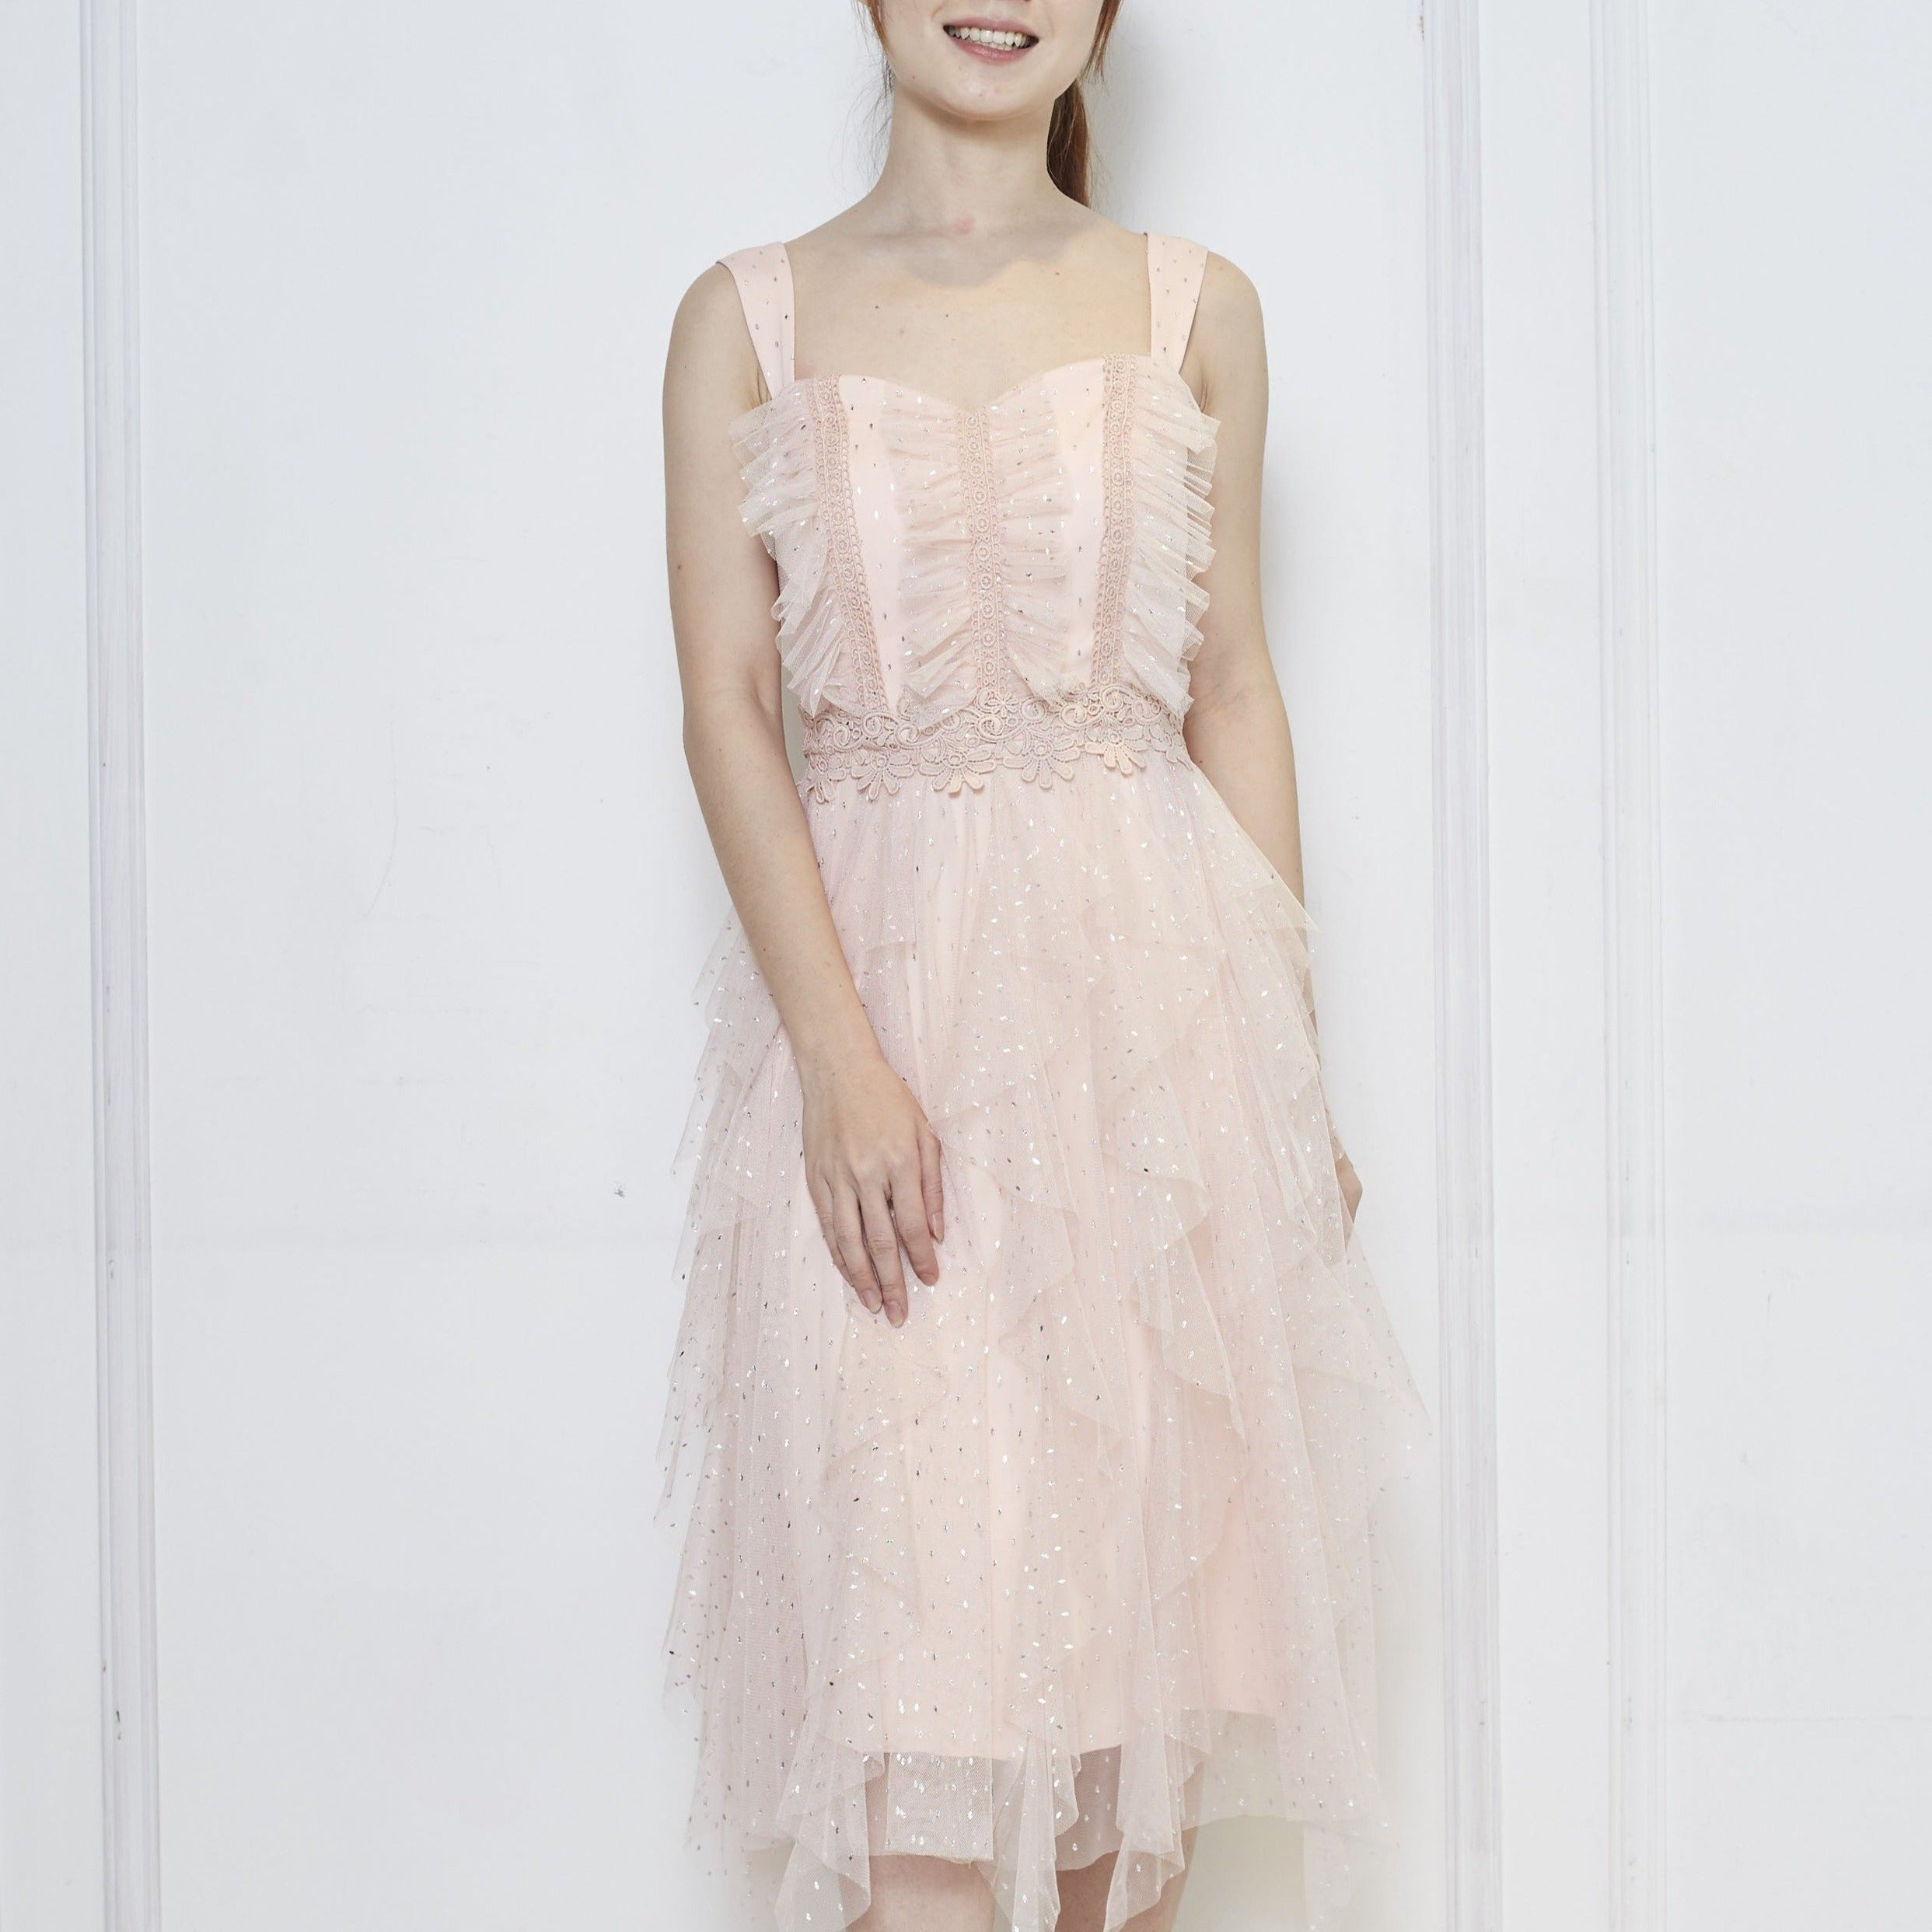 VITALIE TULLE DRESS